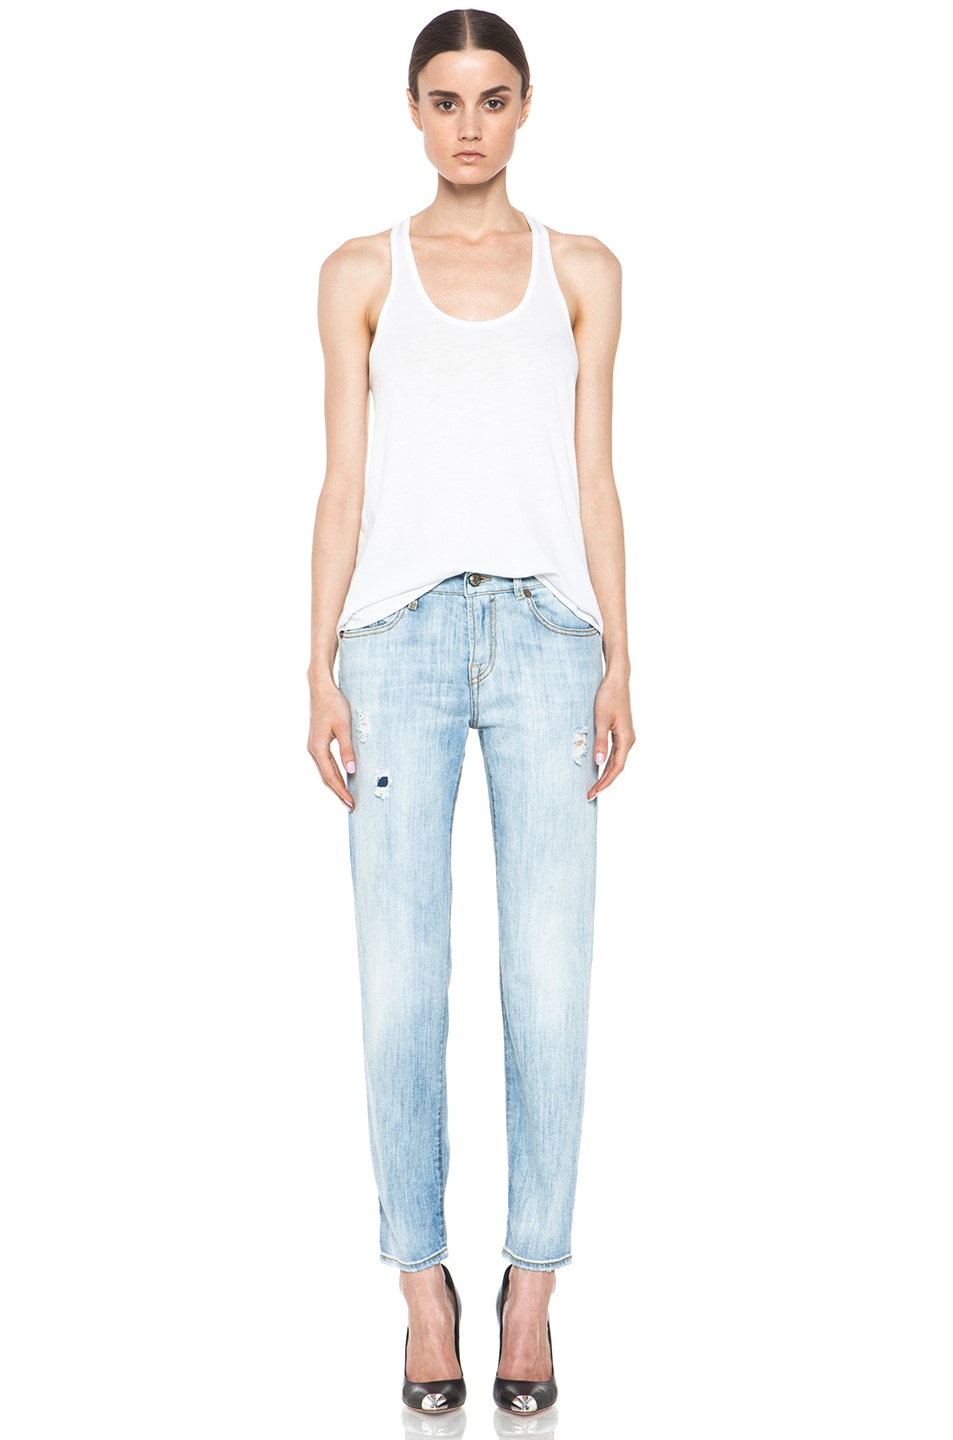 66239962bd49ea Image 5 of R13 Relaxed Skinny Jean in Faded Torn